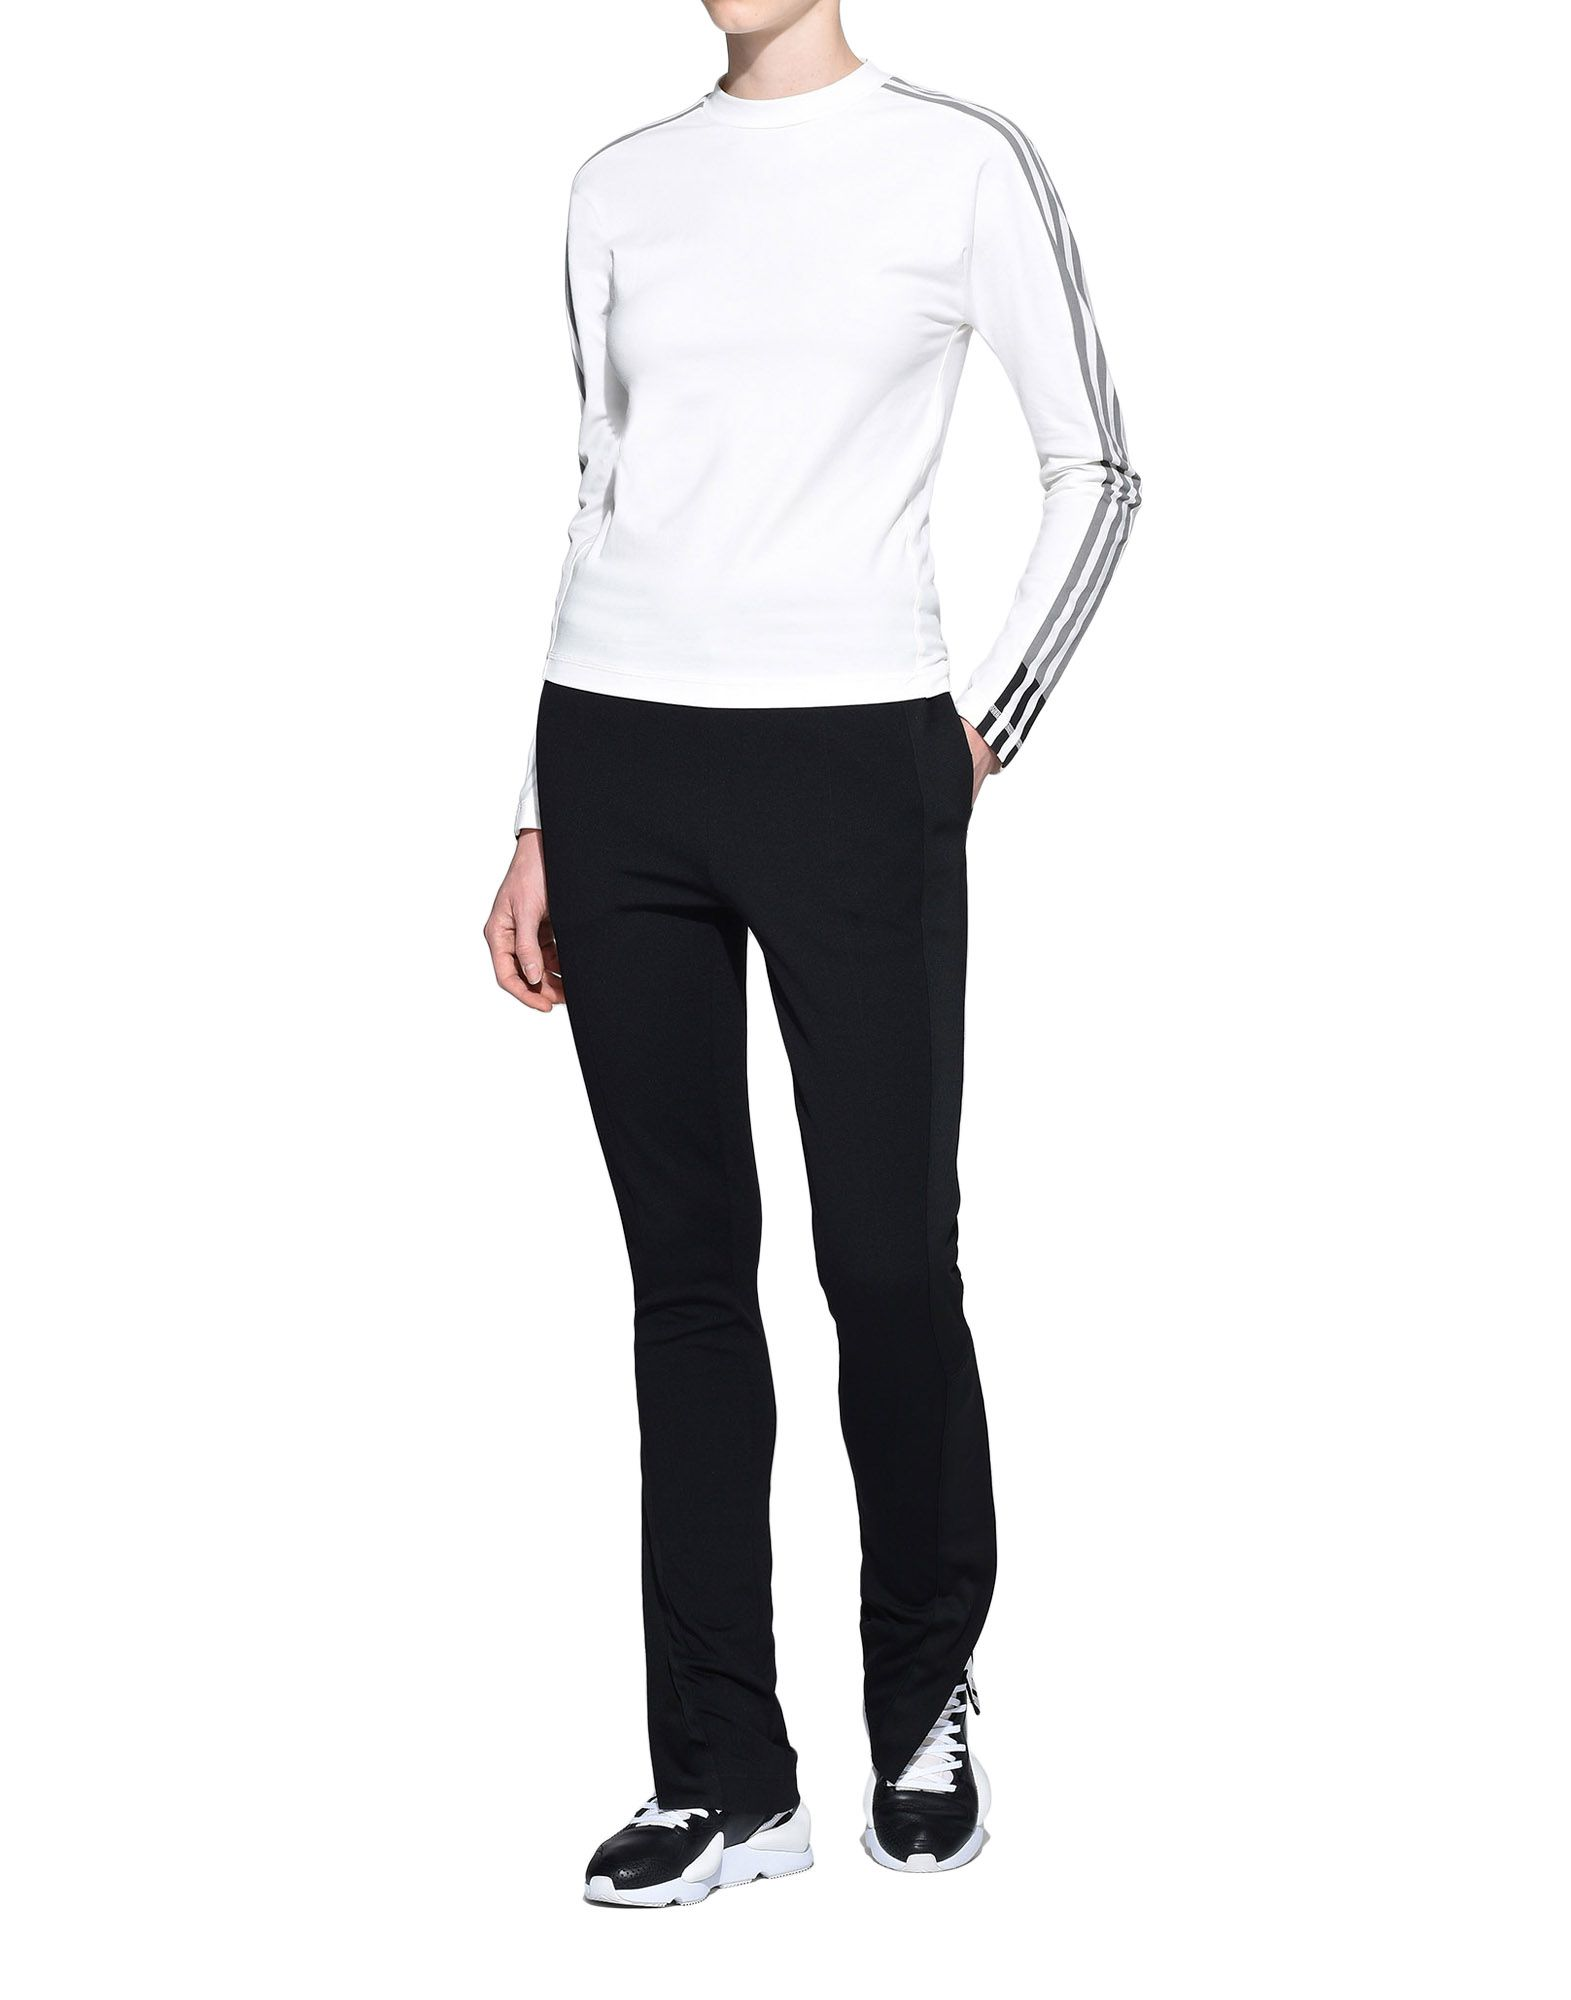 Y-3 Y-3 3-Stripes Firebird Track Pants Track pant Woman a